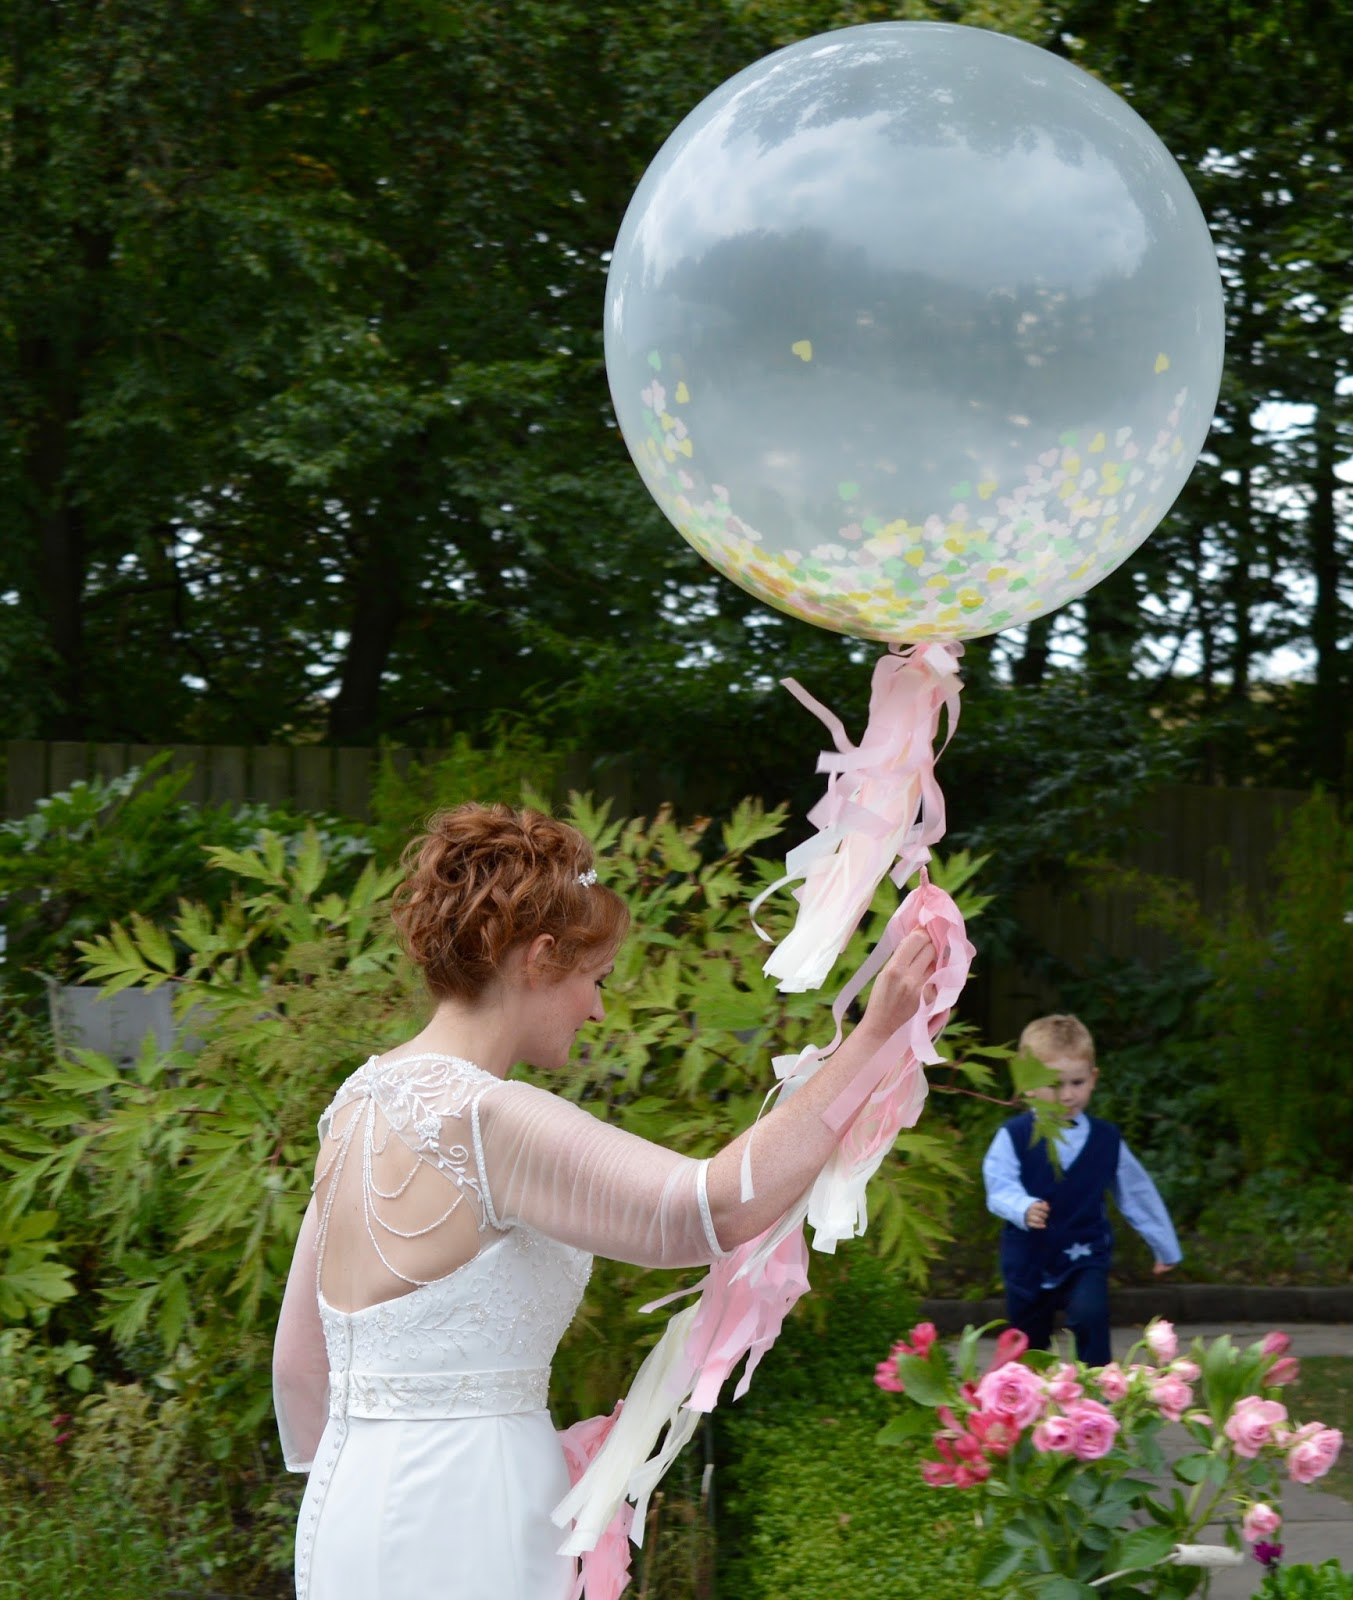 Weddings at The Parlour at Blagdon in Northumberland - giant confetti balloon